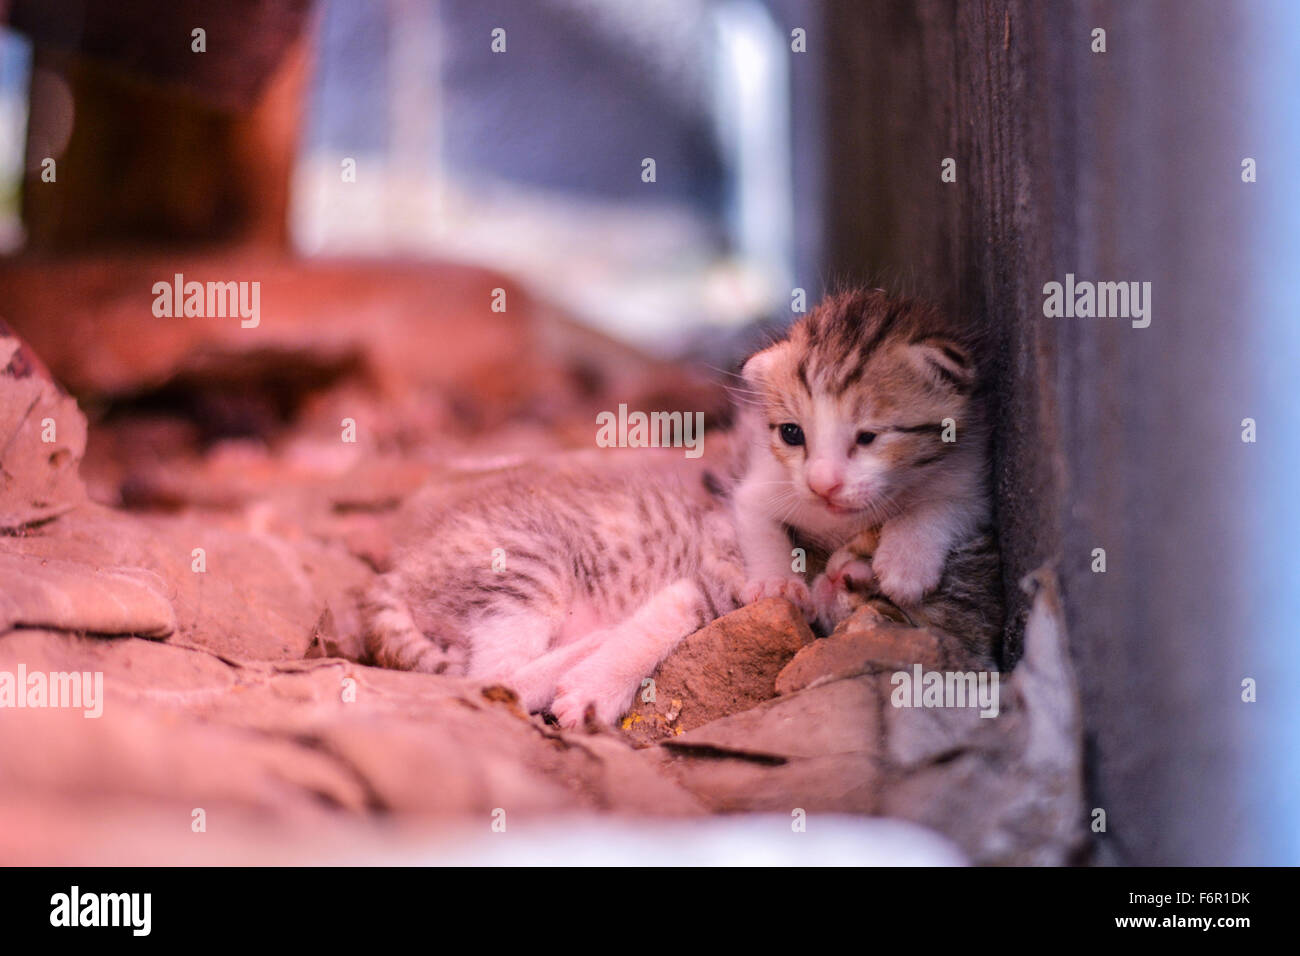 A blind sick and weak tabby kitten sitting by the wall looking for help - Stock Image